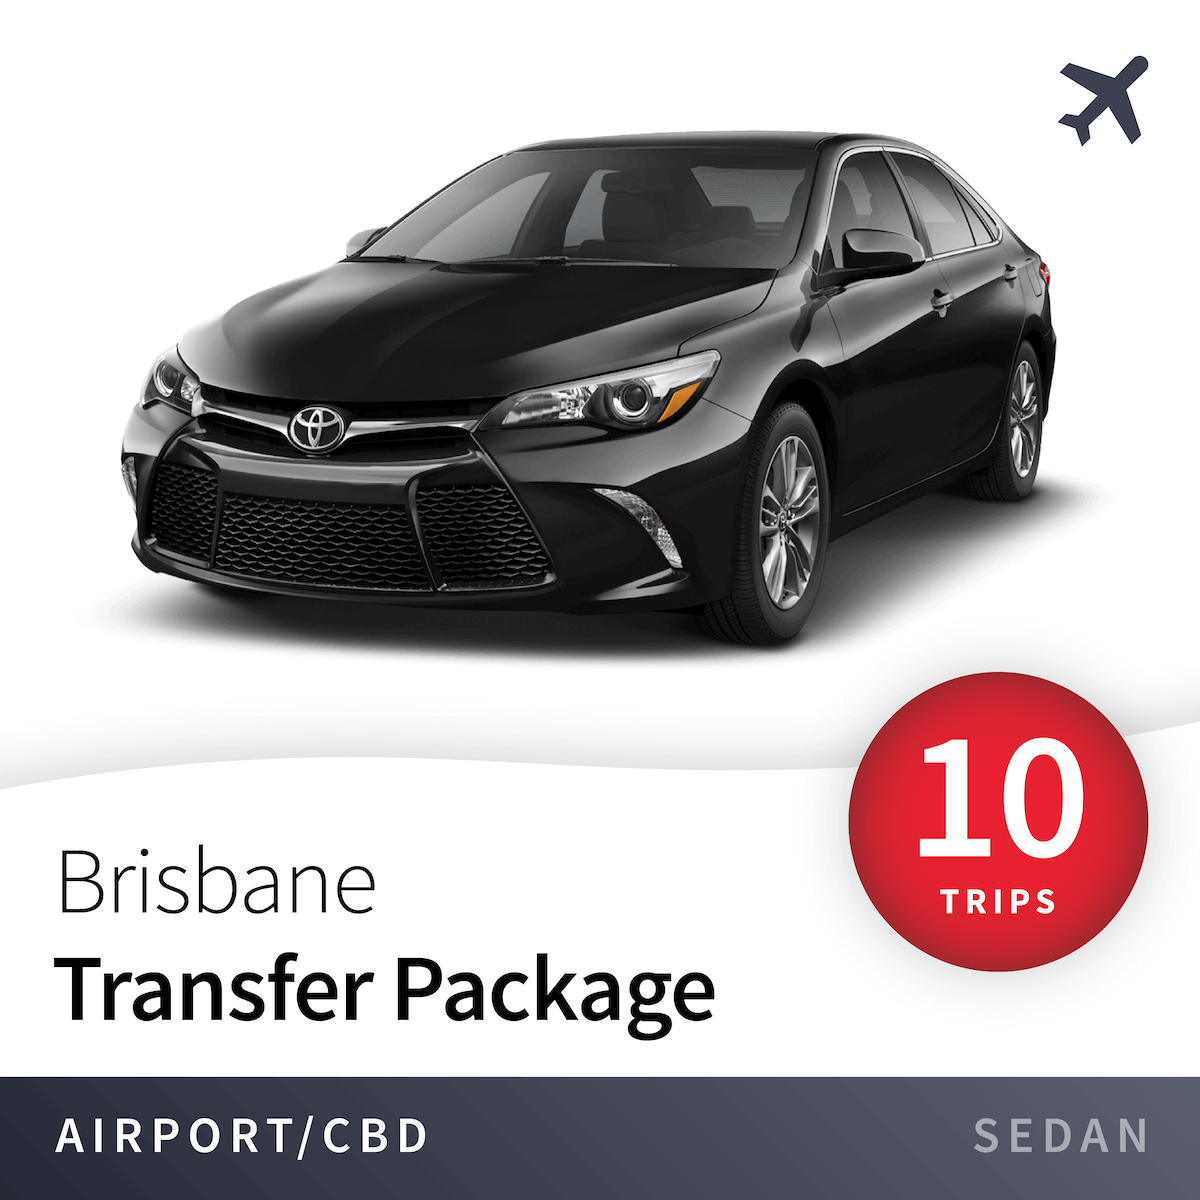 Brisbane Airport Transfer Package - Sedan (10 Trips) 4